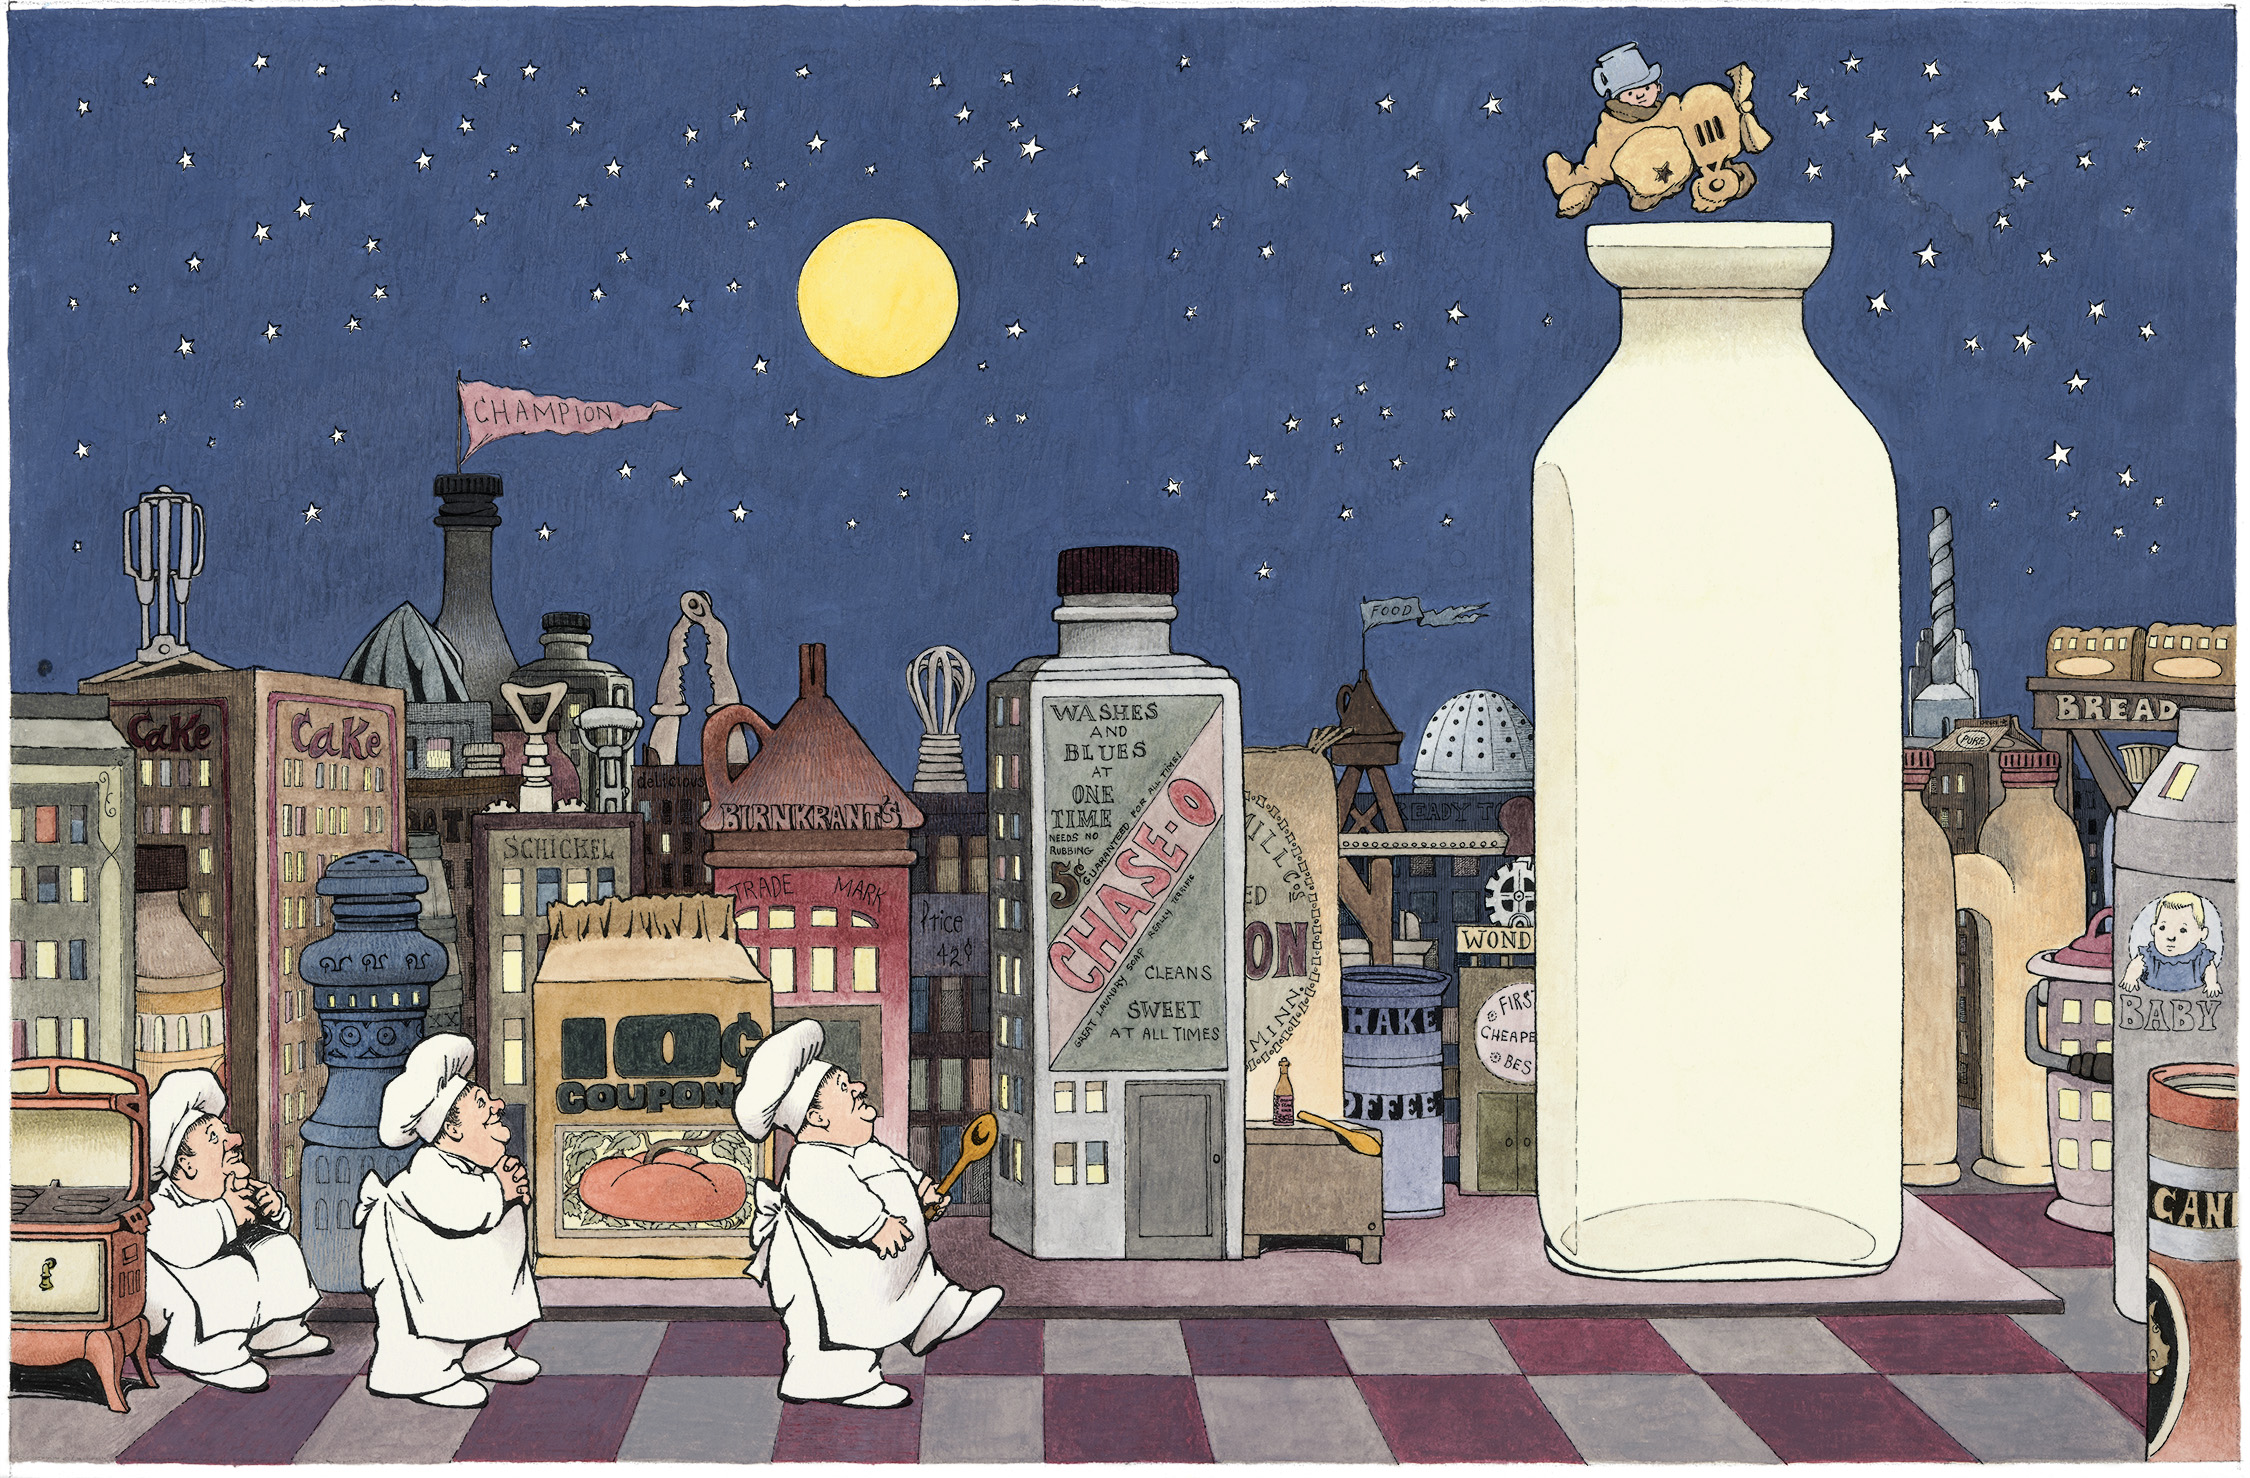 Color final drawing for Maurice Sendak's In the Night Kitchen book. Picture depicts three bakers on the ground awaiting a delivery of milk from the main character, Mickey.